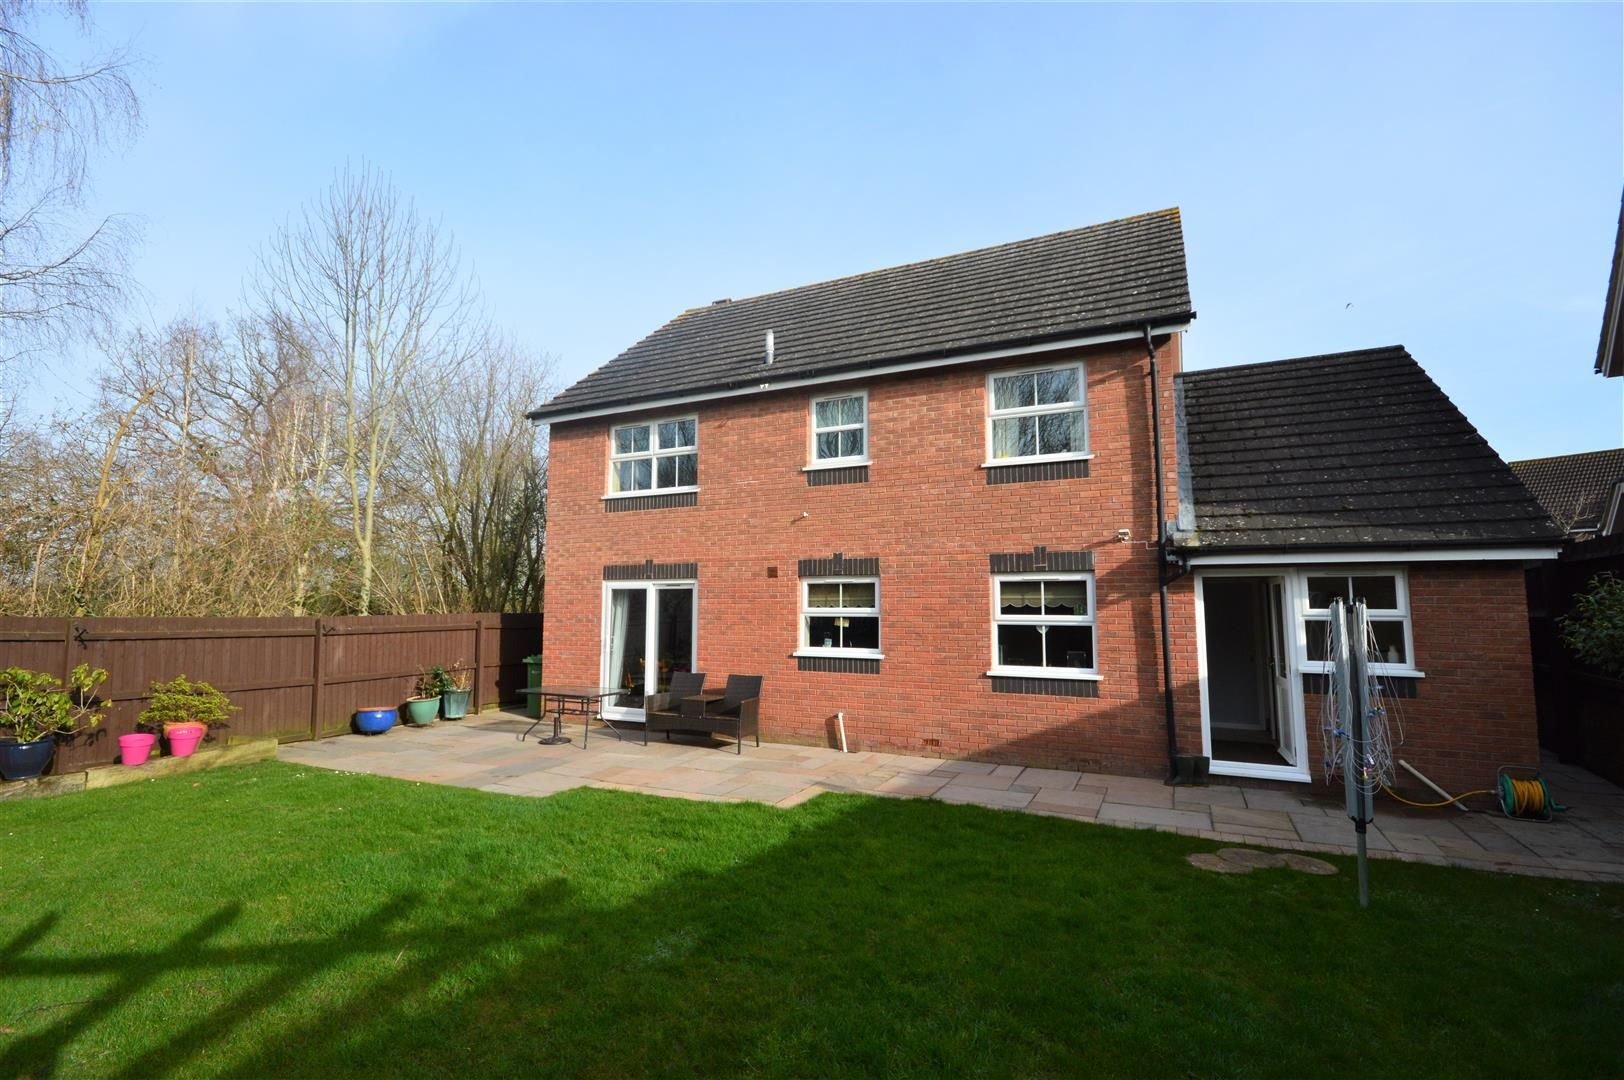 5 bed detached for sale in Leominster  - Property Image 16